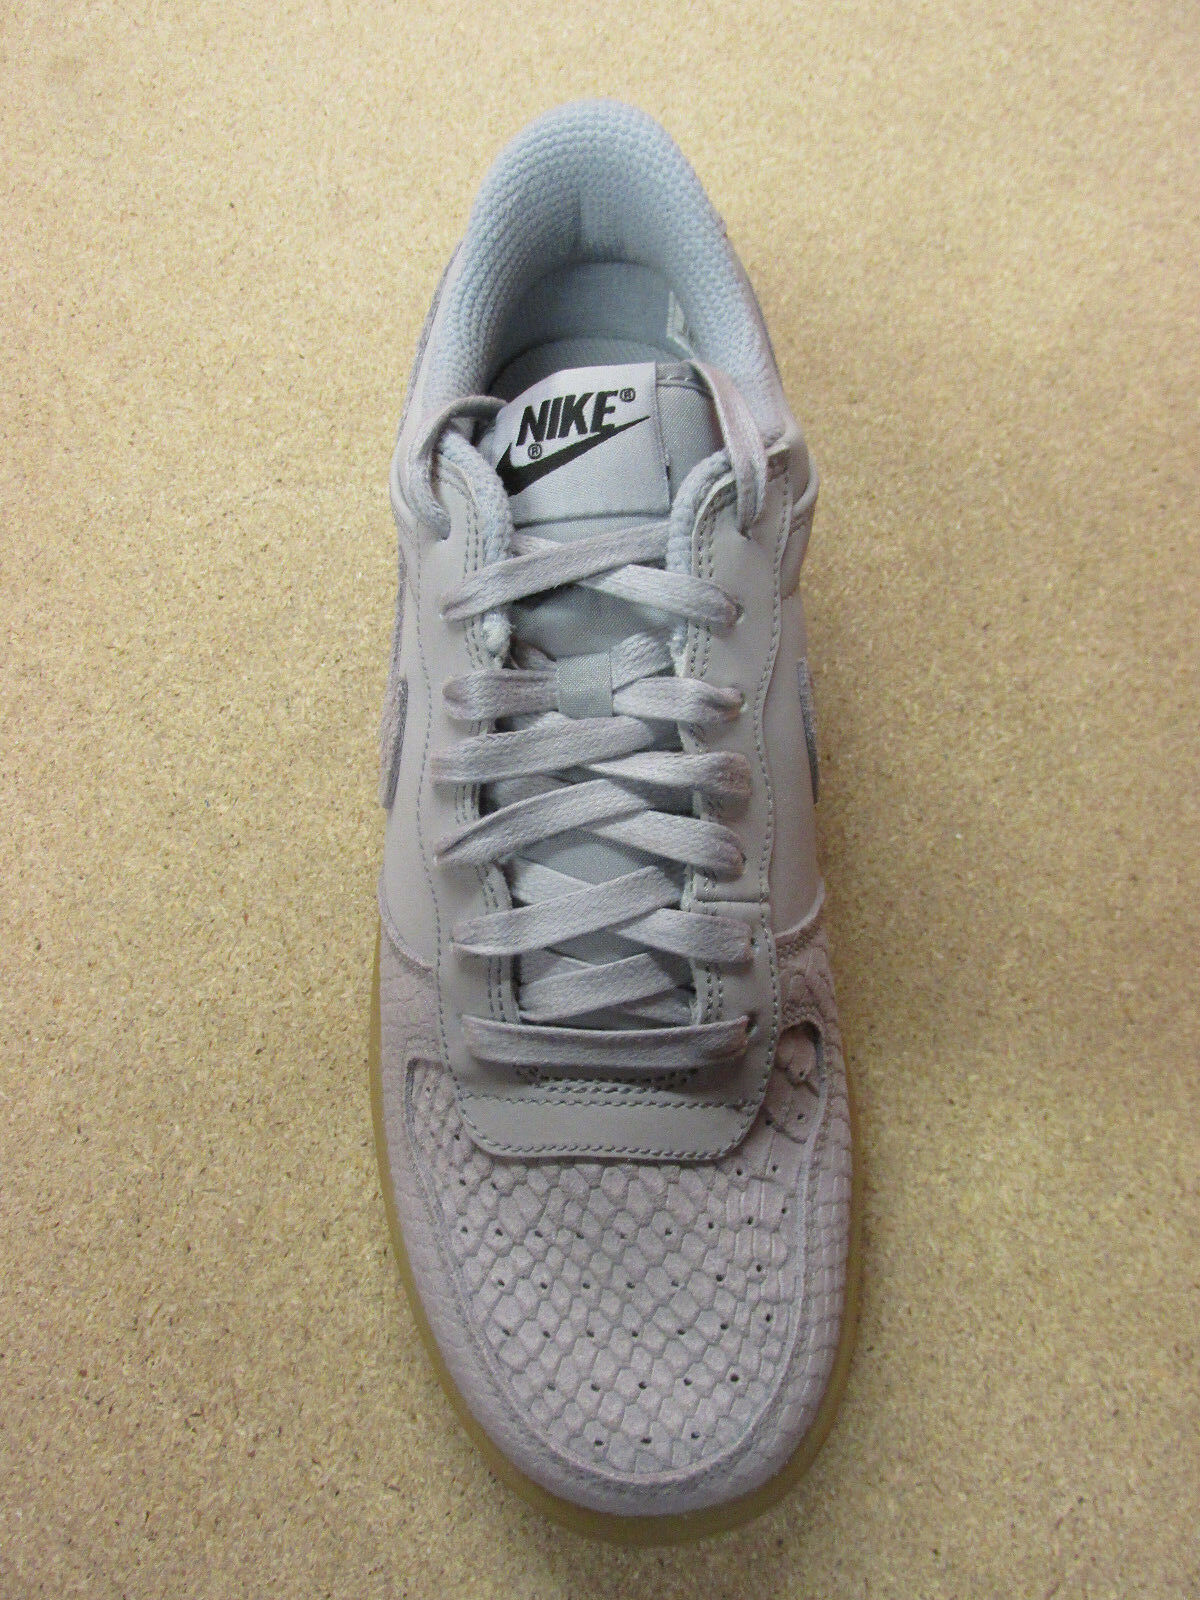 Nike Big Nike Lux Sneakers Low Mens Trainers 854166 001 Sneakers Lux Shoes d737de